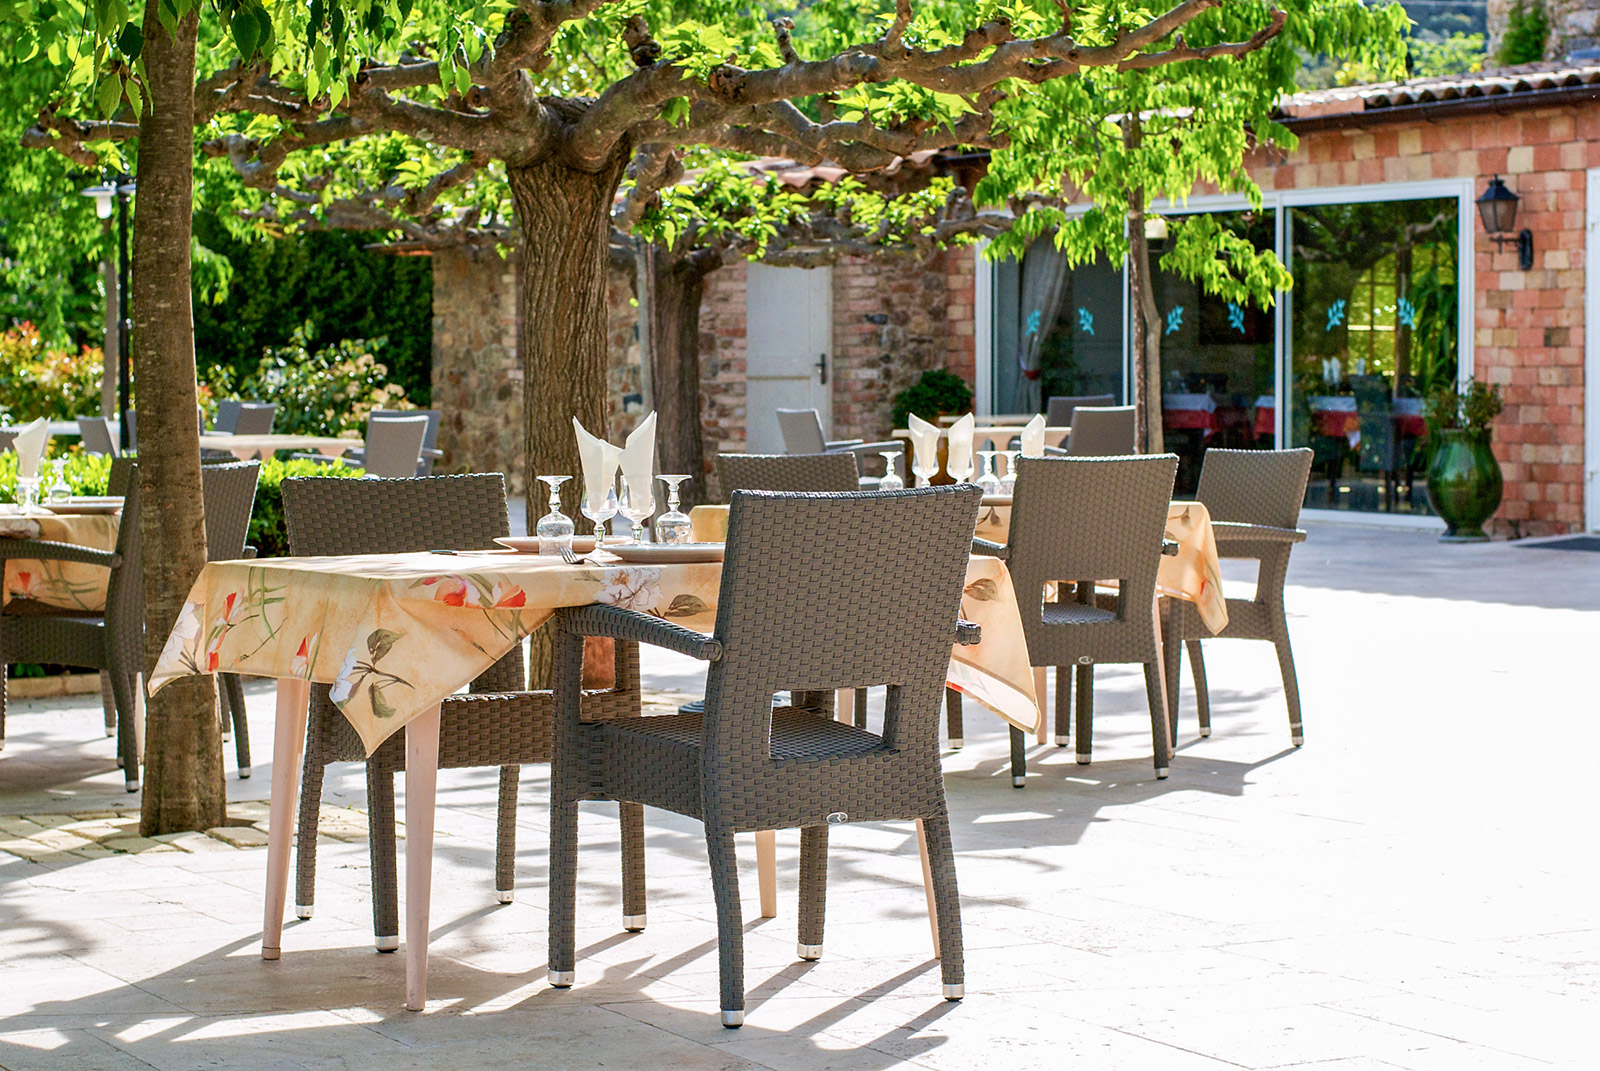 Take place on our terrace